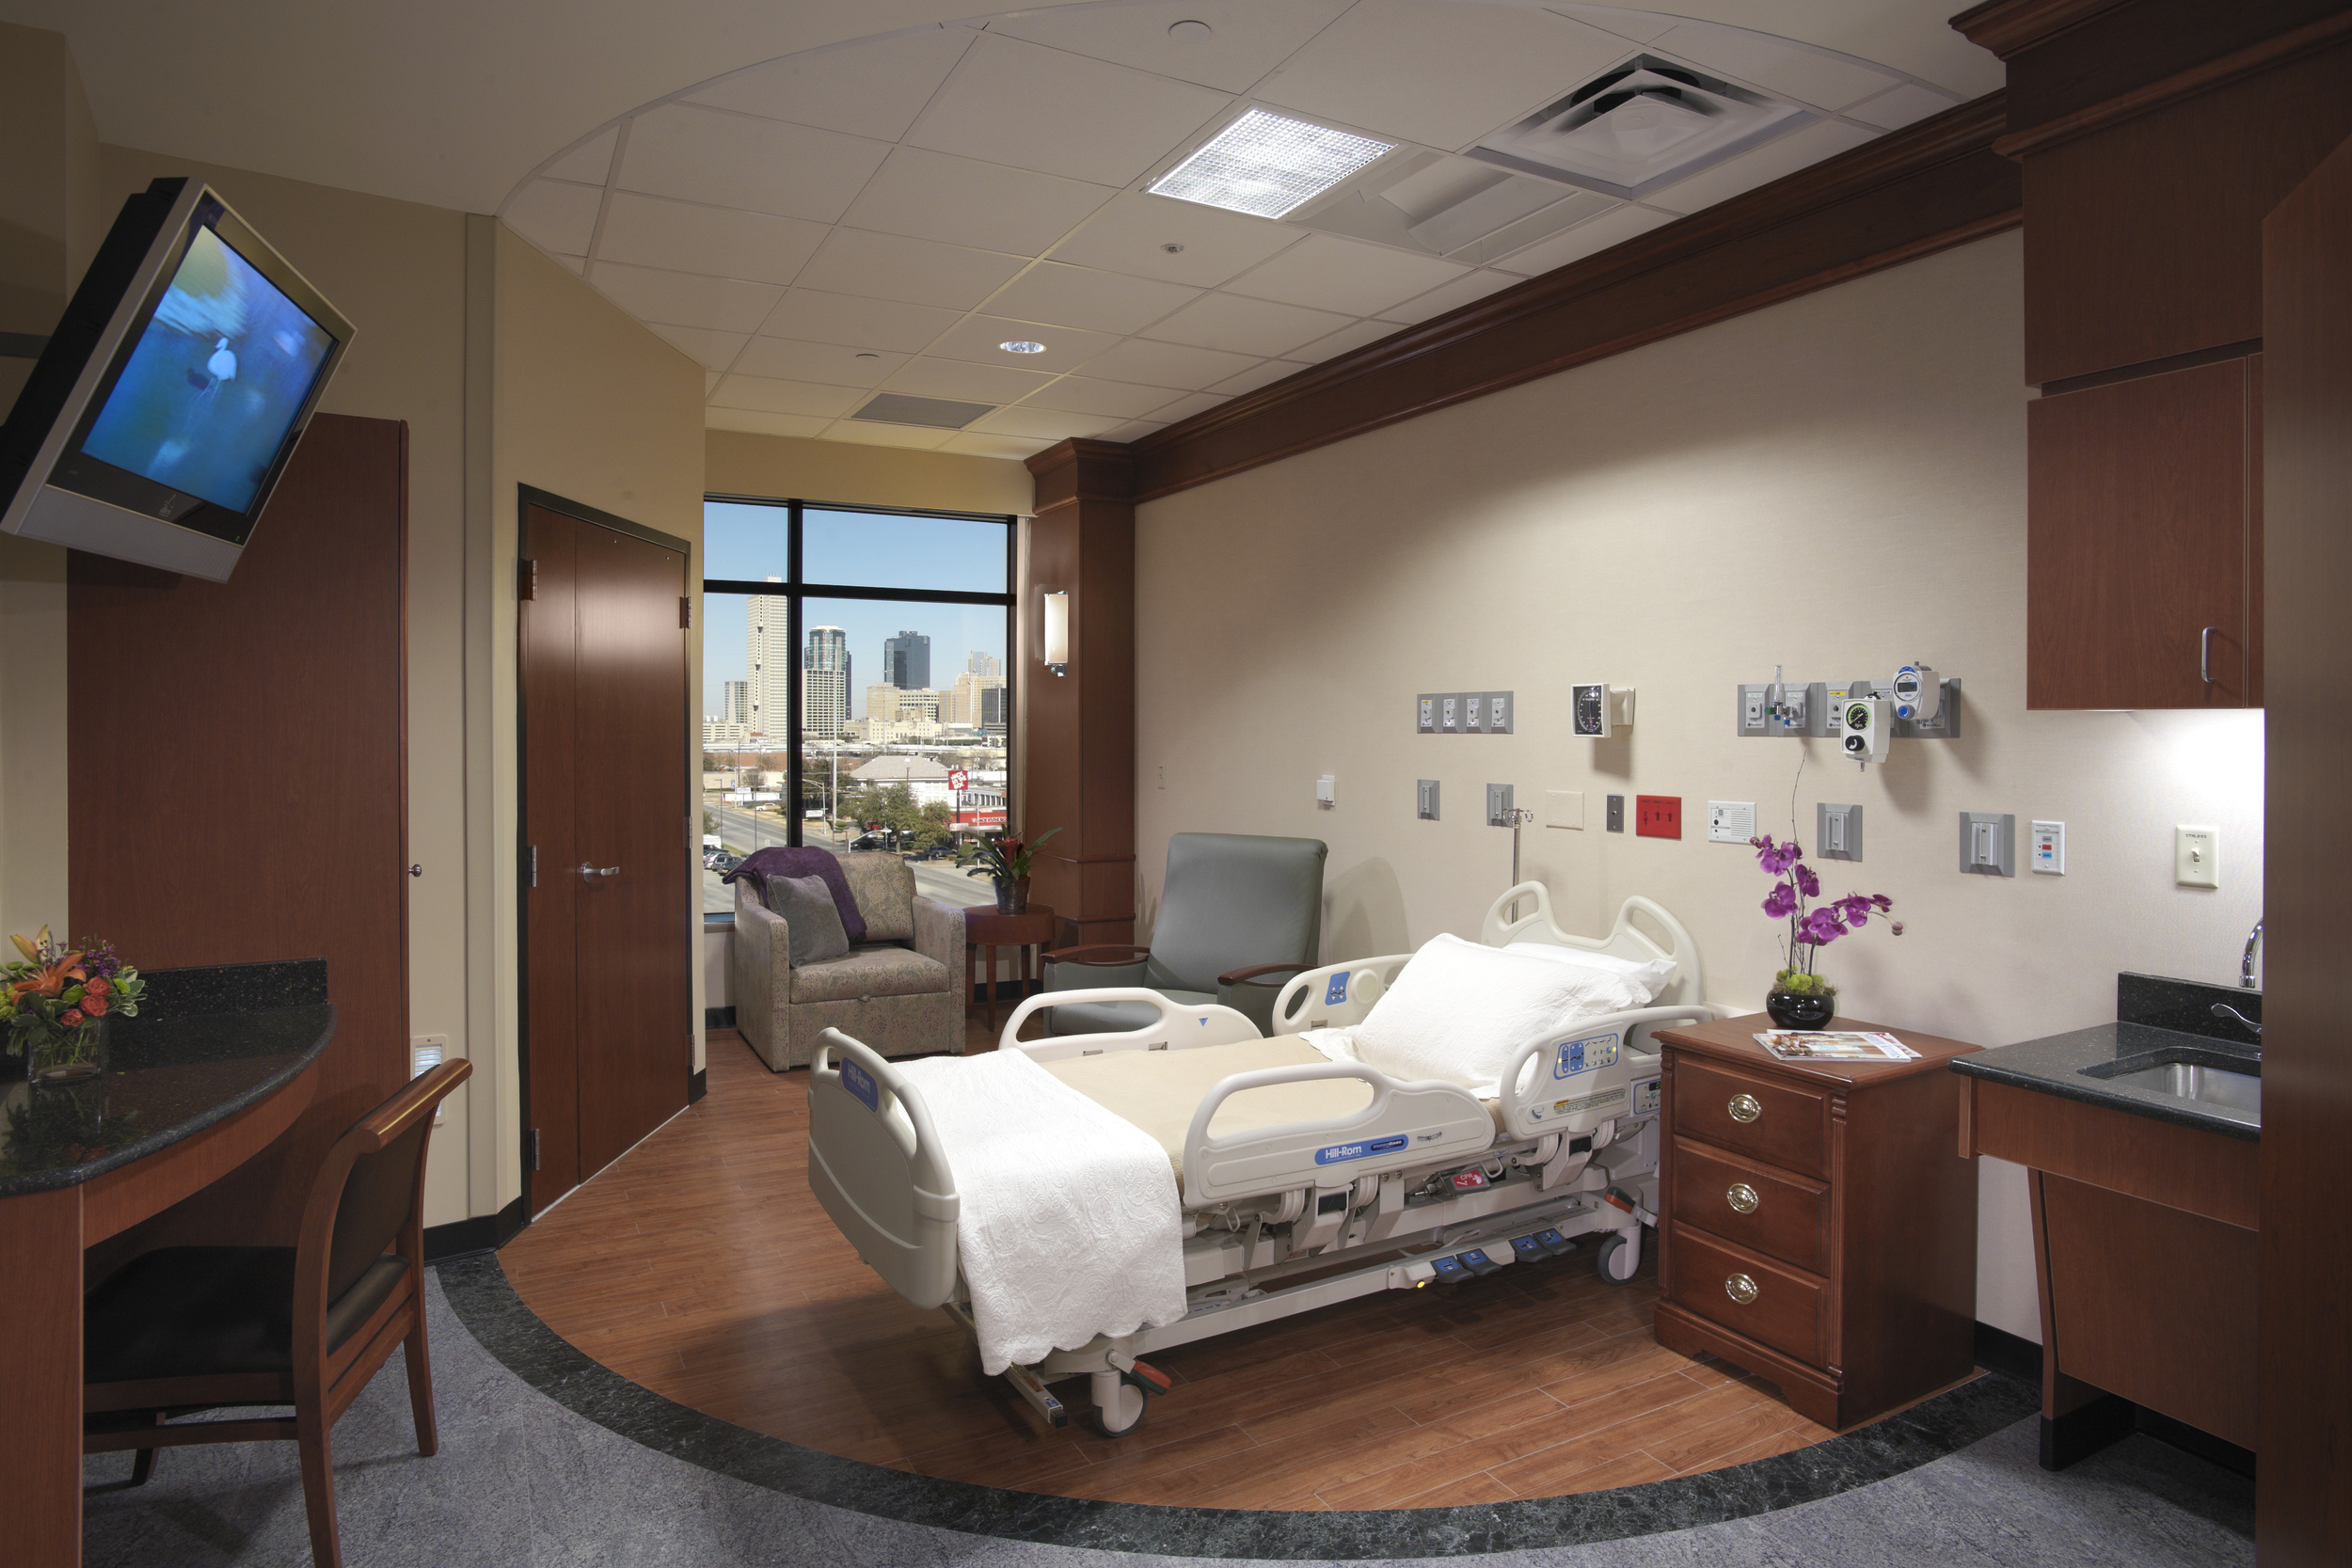 Extraneous and Peripheral Factors Impeding Designing for Flexibility    Funds:  Herman Miller Grant   Collaborators:  School of Nursing, University of Texas, Arlington, TX   Location:  Five acute care hospitals across the United States